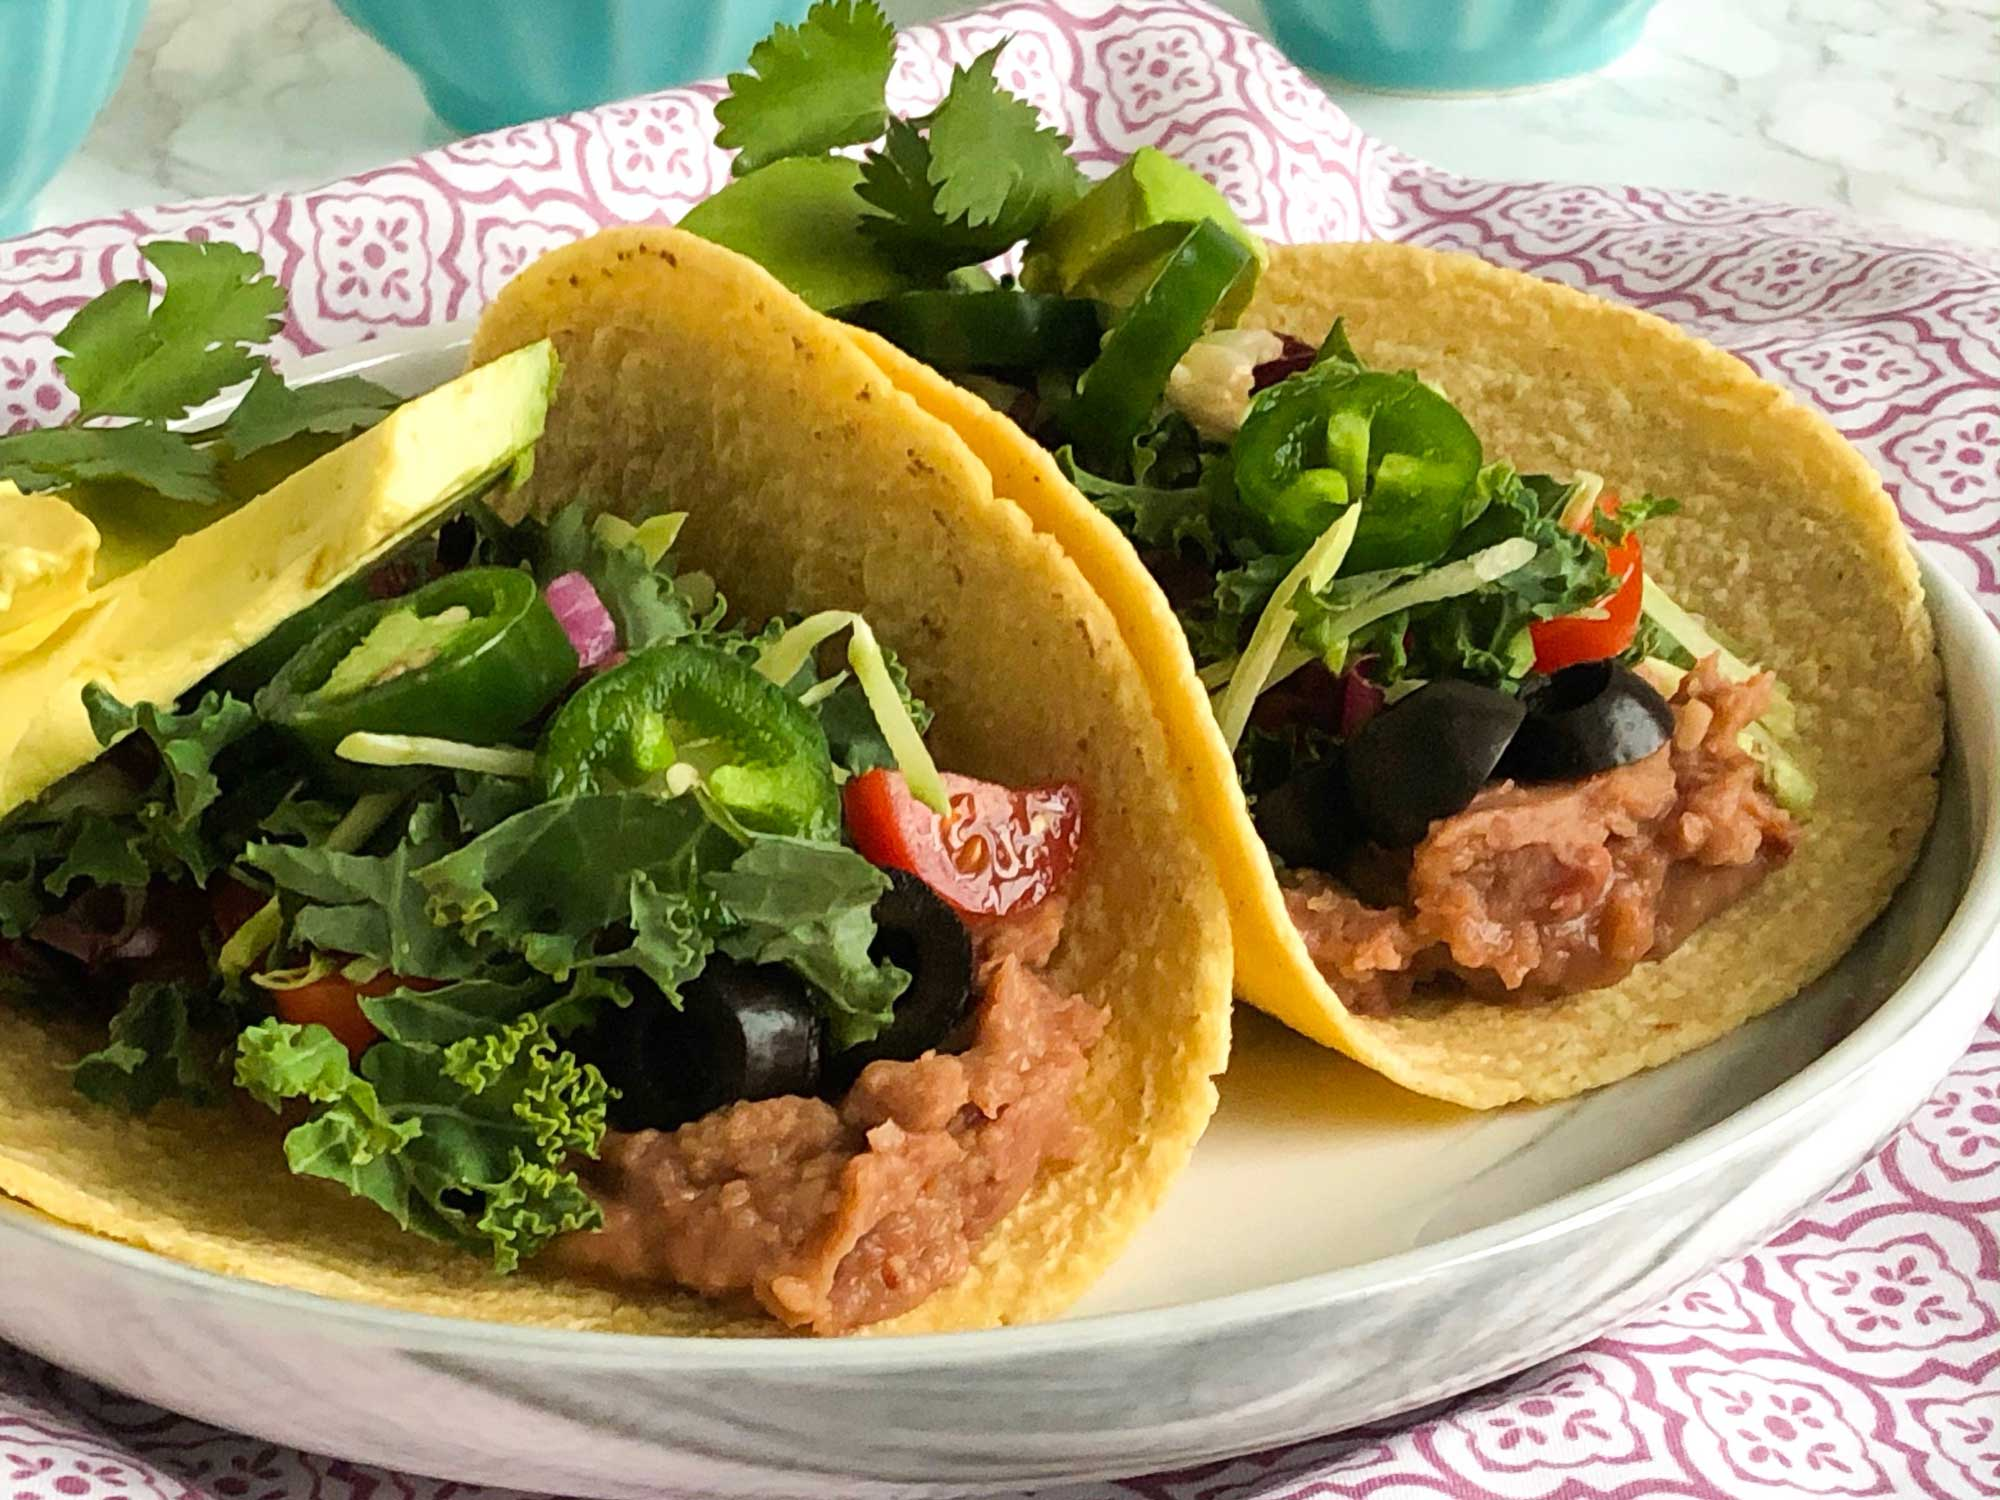 Side view of tacos